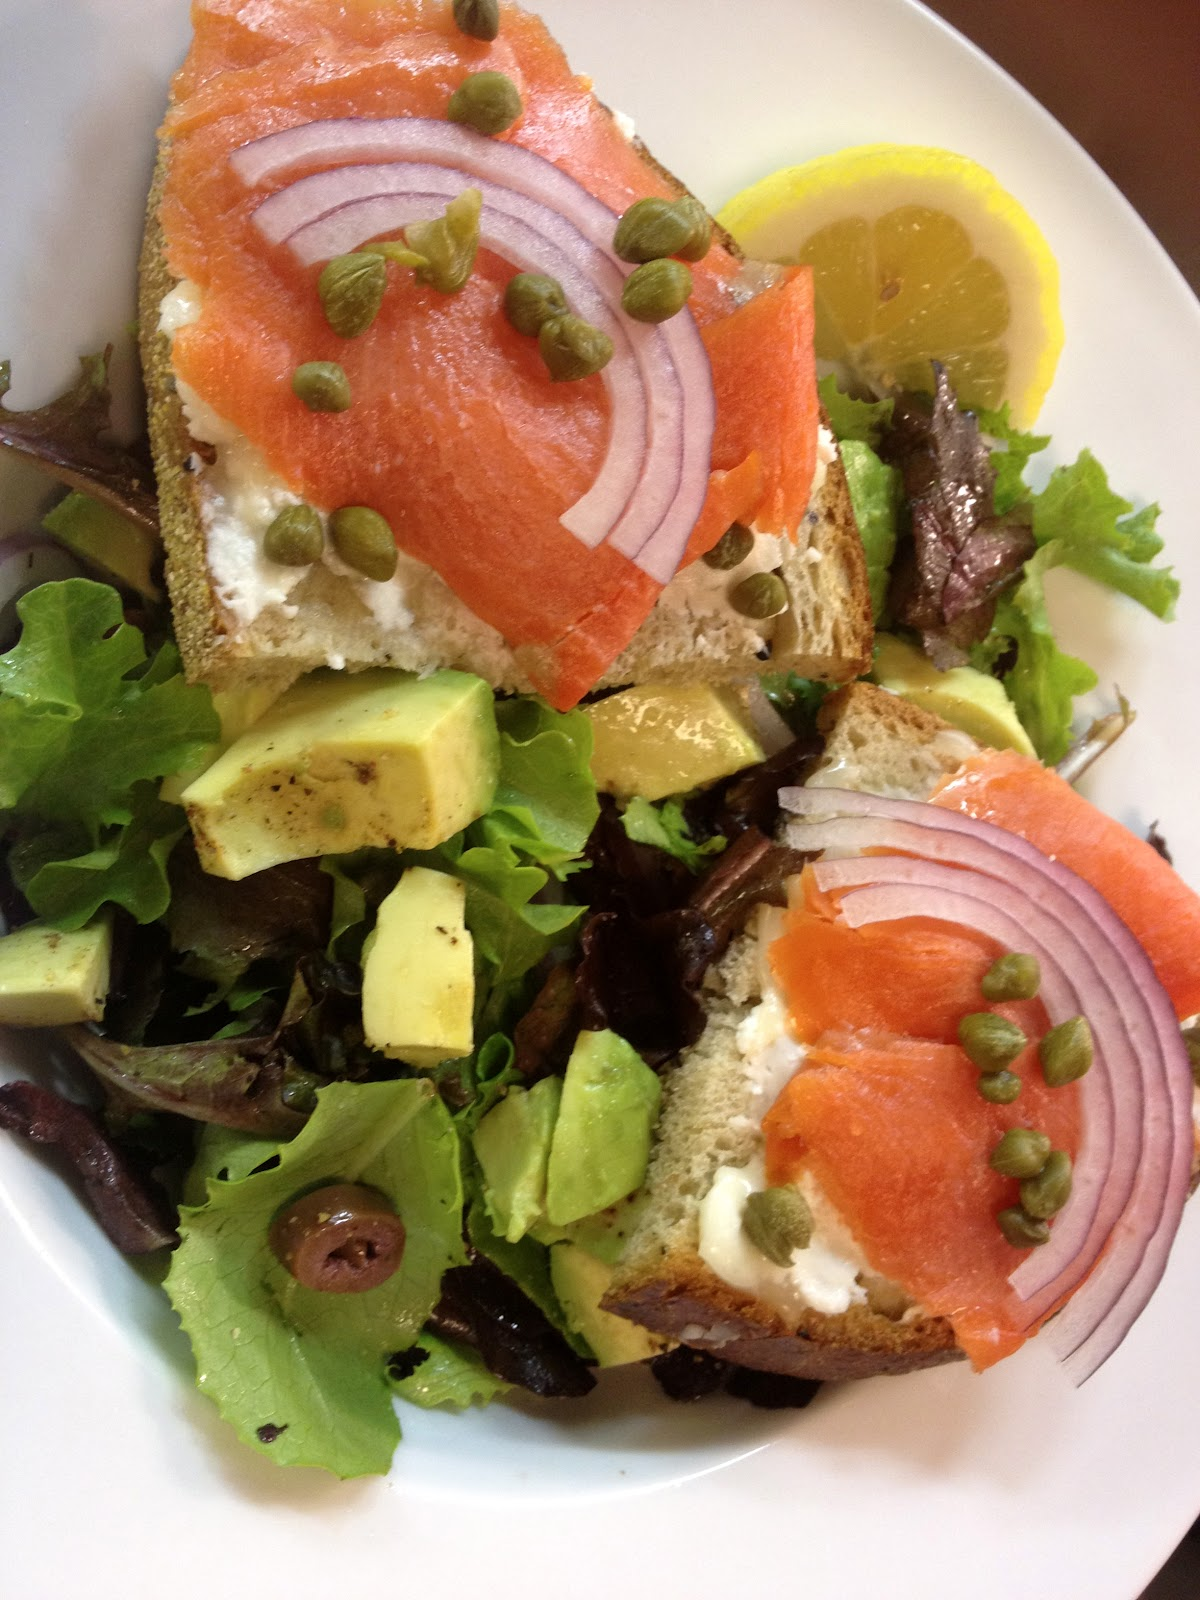 Finished Smoked Salmon and Goat Cheese Toasts over Field Greens, Photo ...